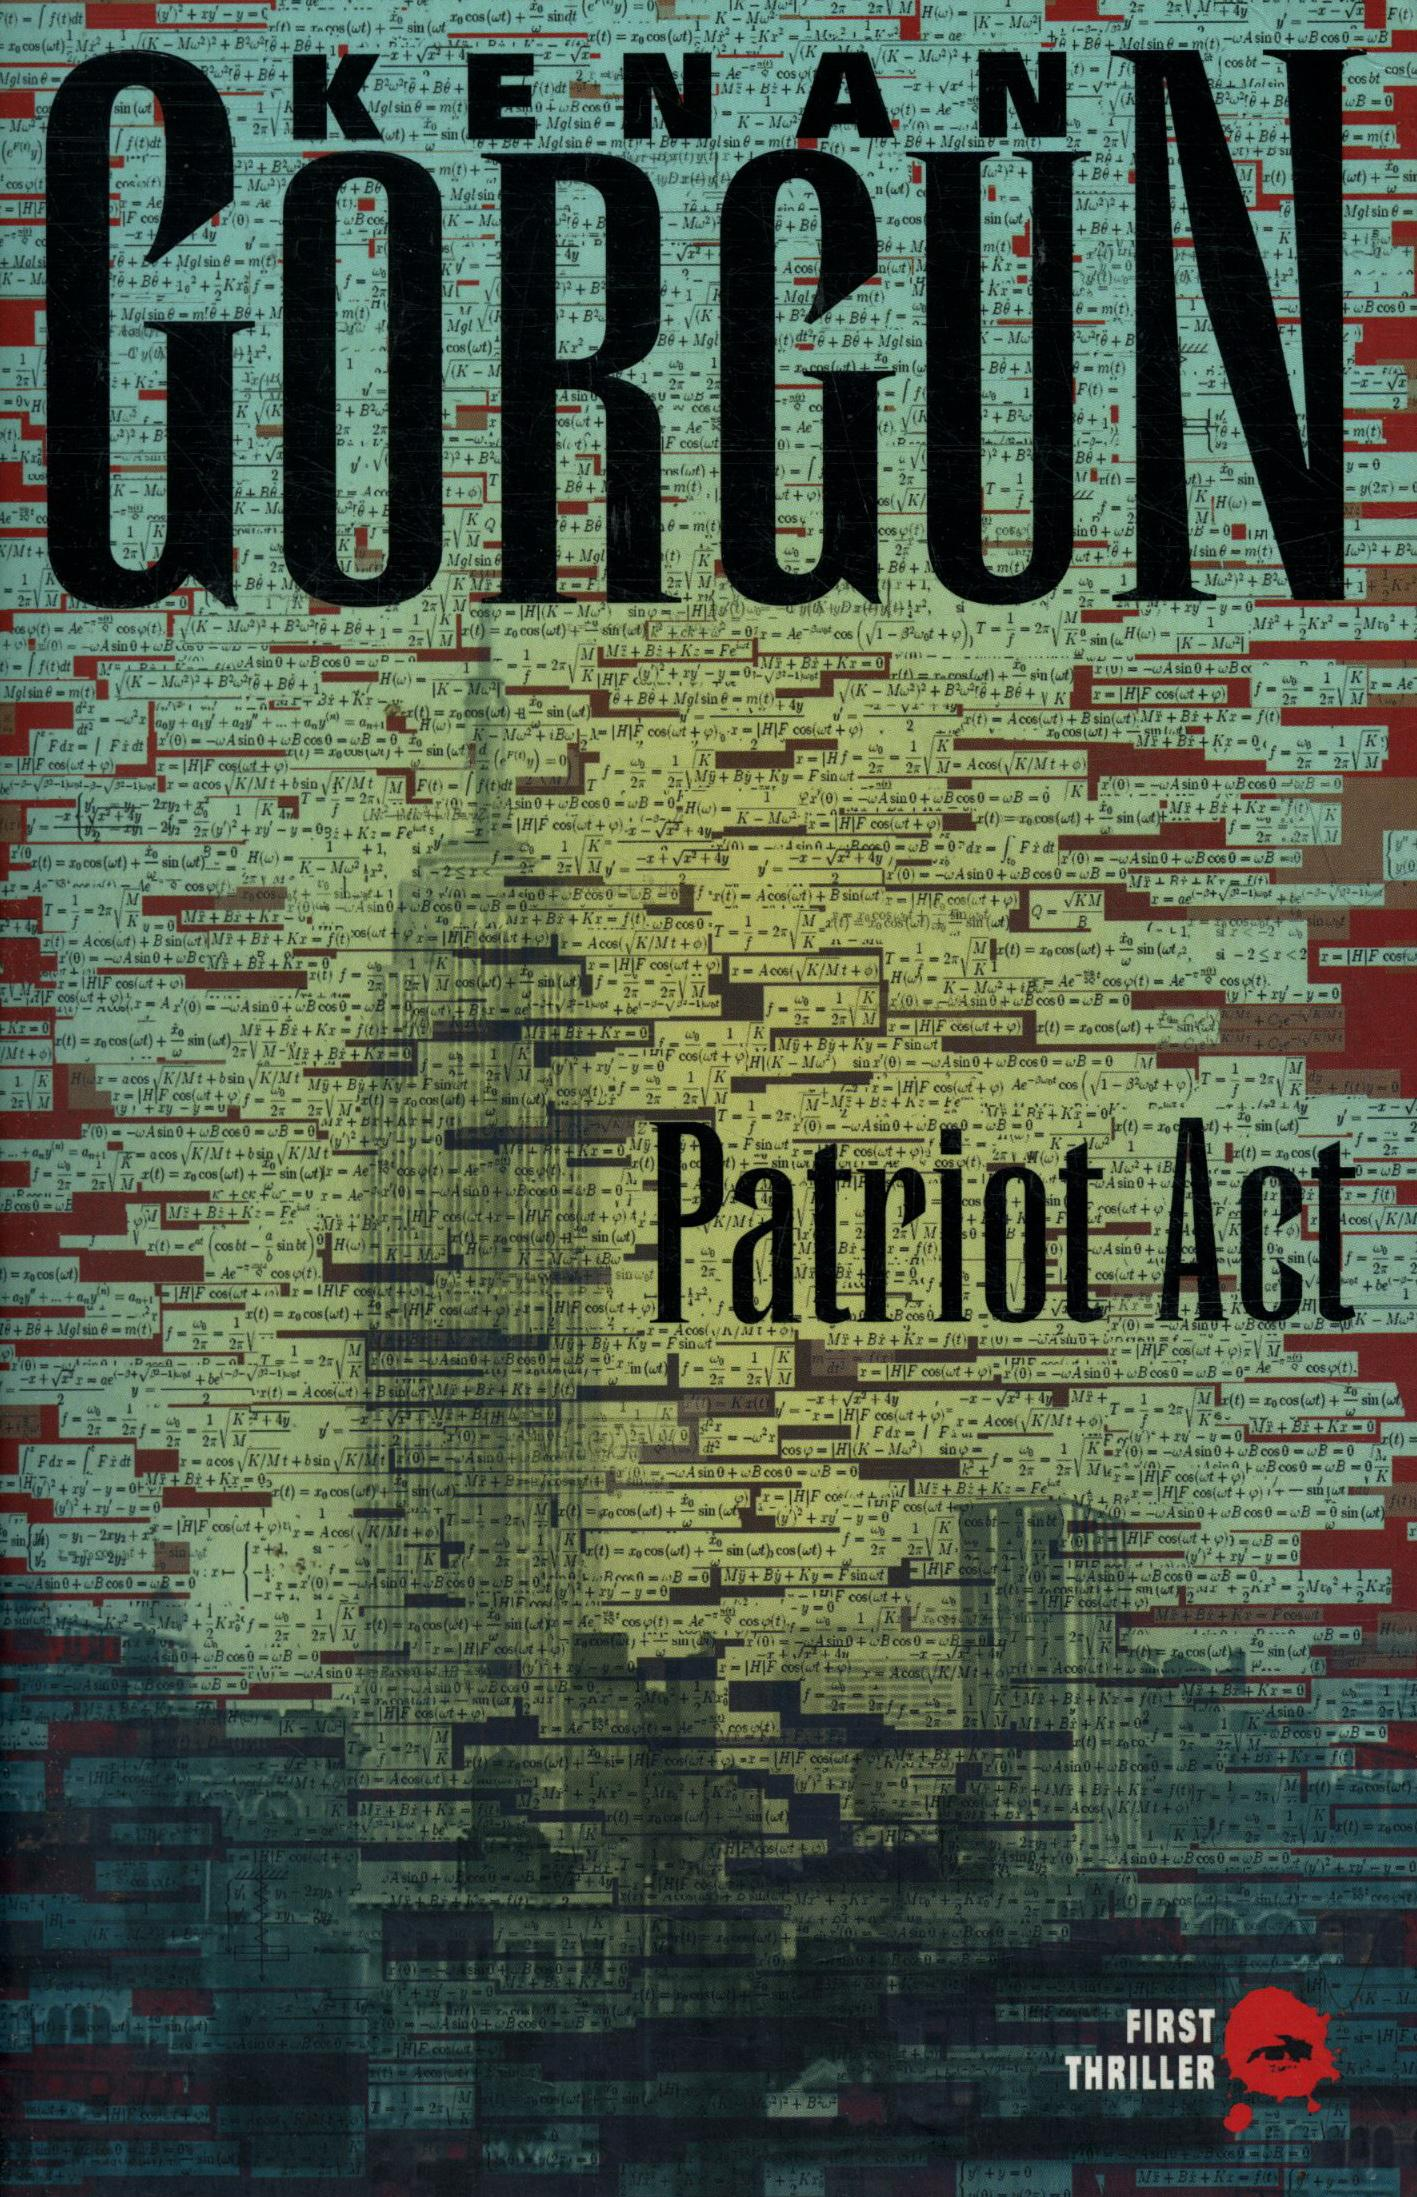 Patriot act  - Gorgun Kenan  - Kenan Gorgun